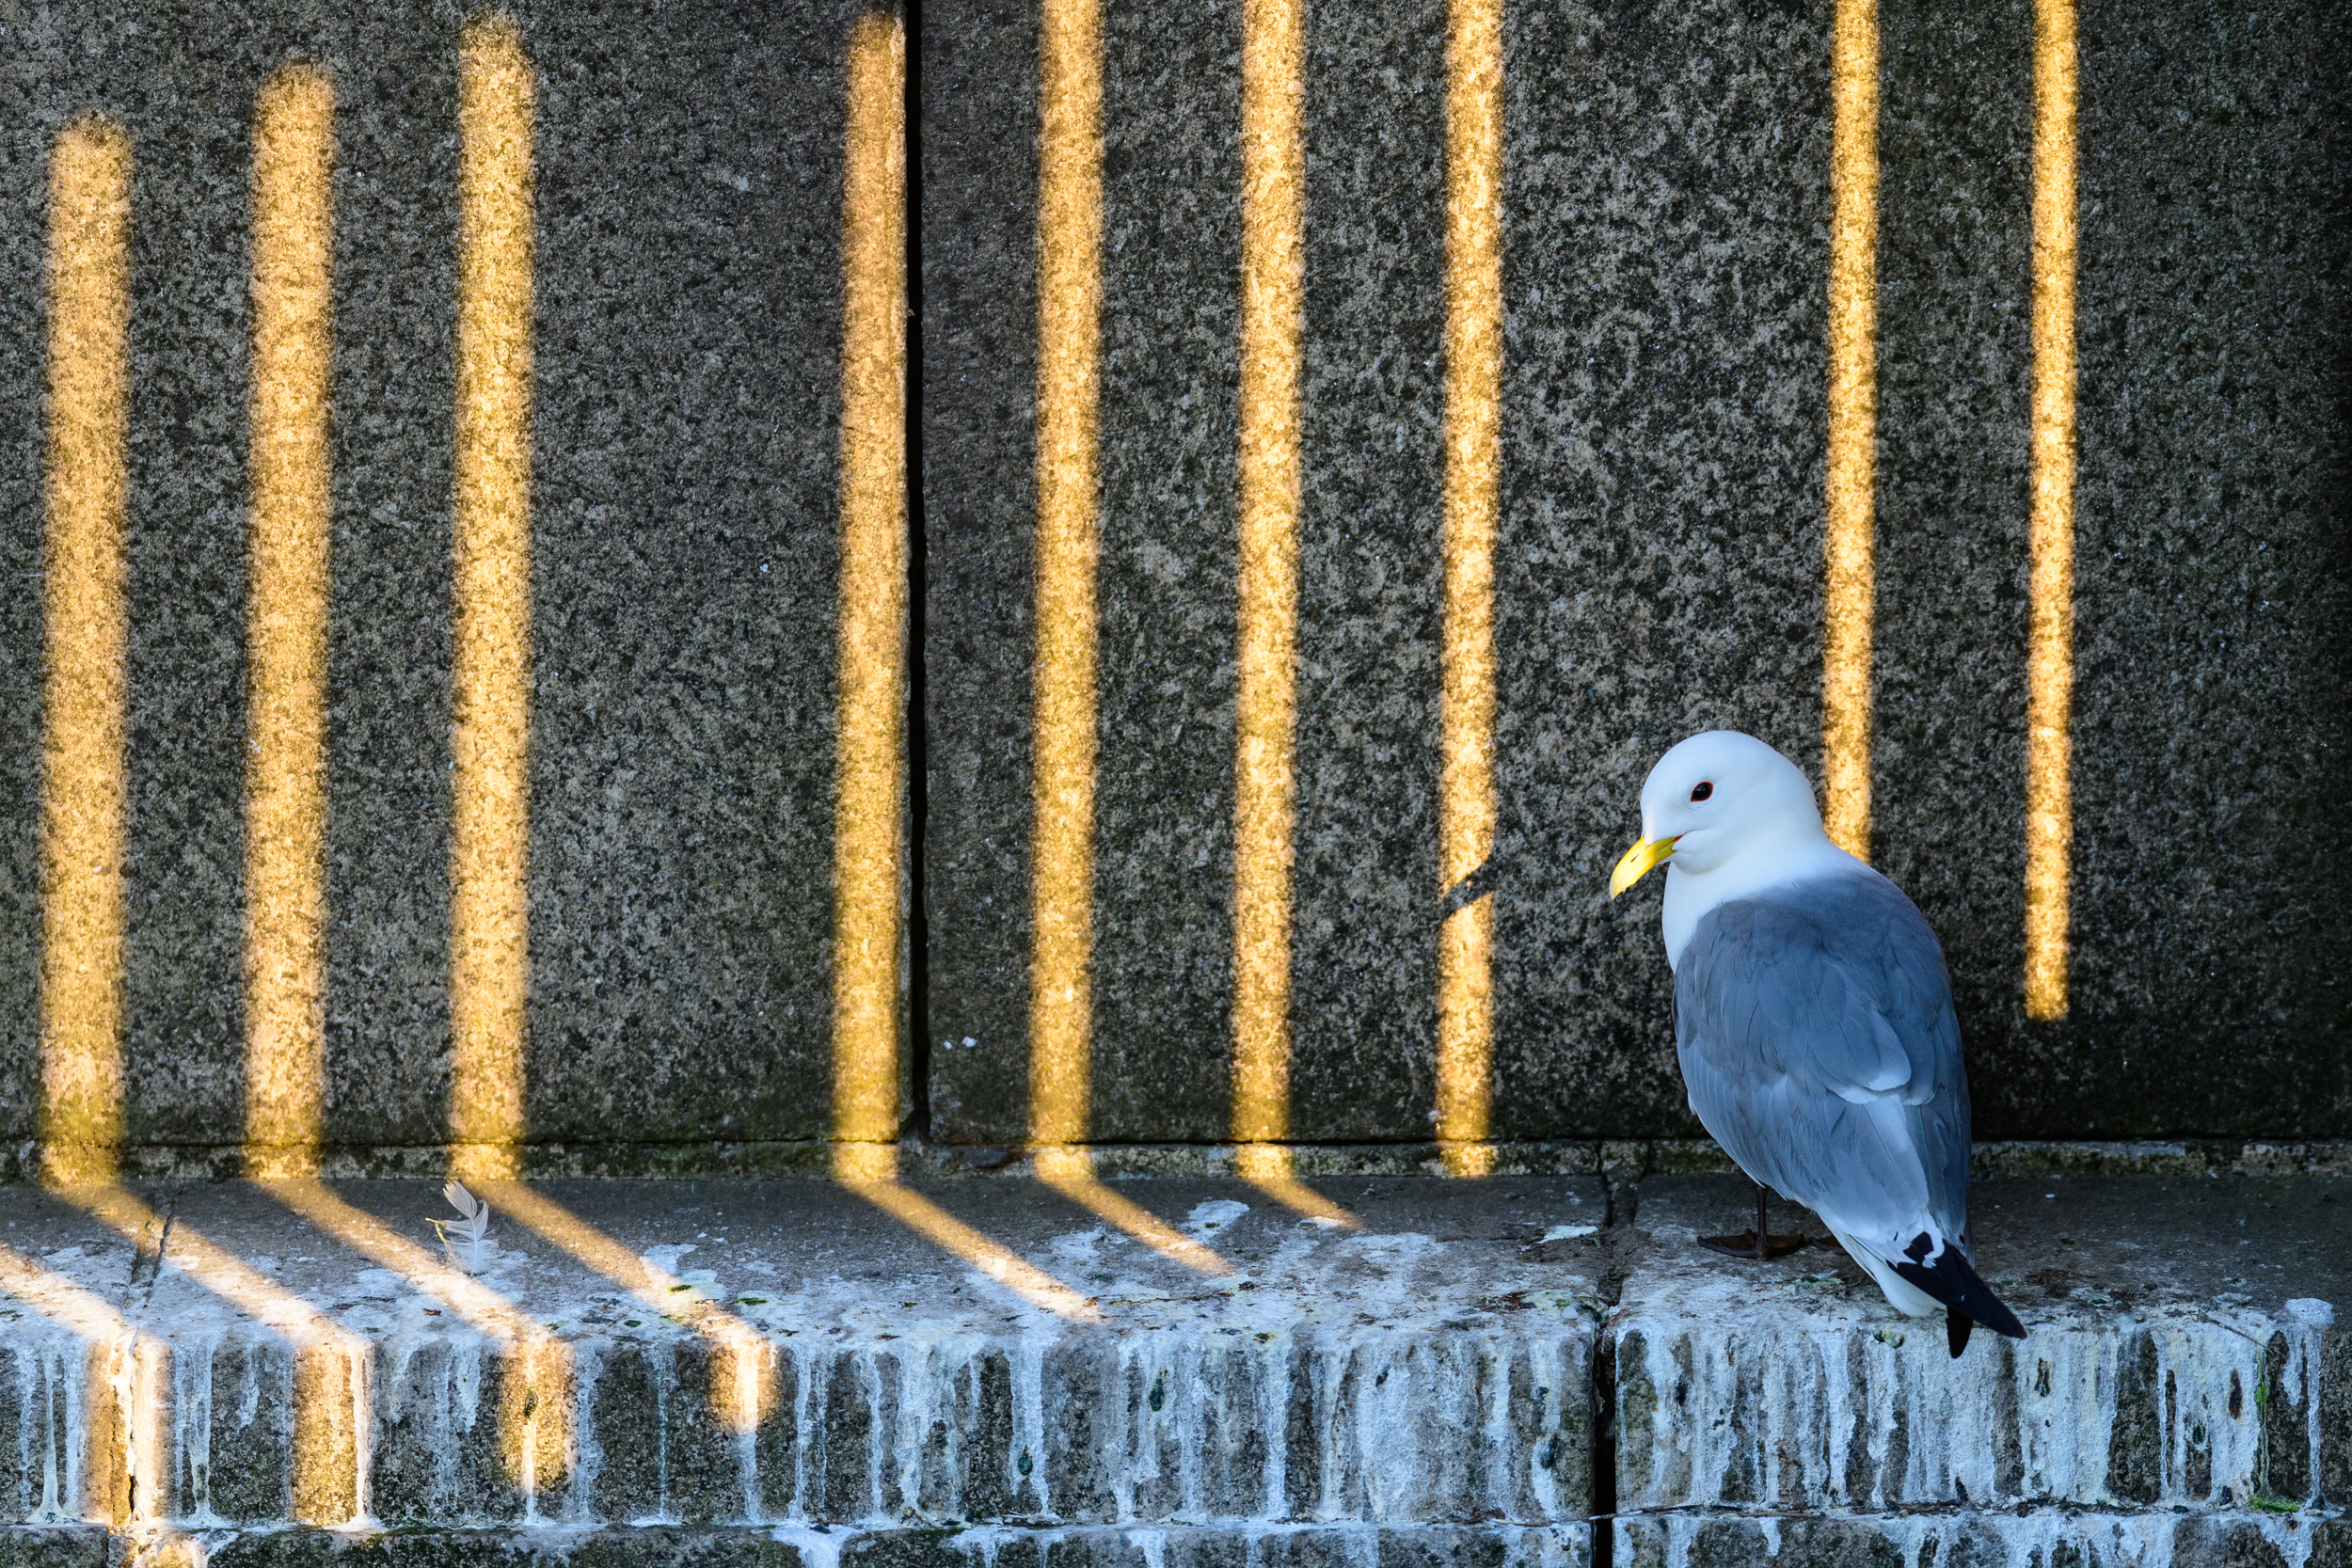 Black-legged kittiwake (Rissa tridactyla) adult perched on a ledge of the Tyne Bridge, with light filtering through gaps in the bridge. Newcastle, UK. June